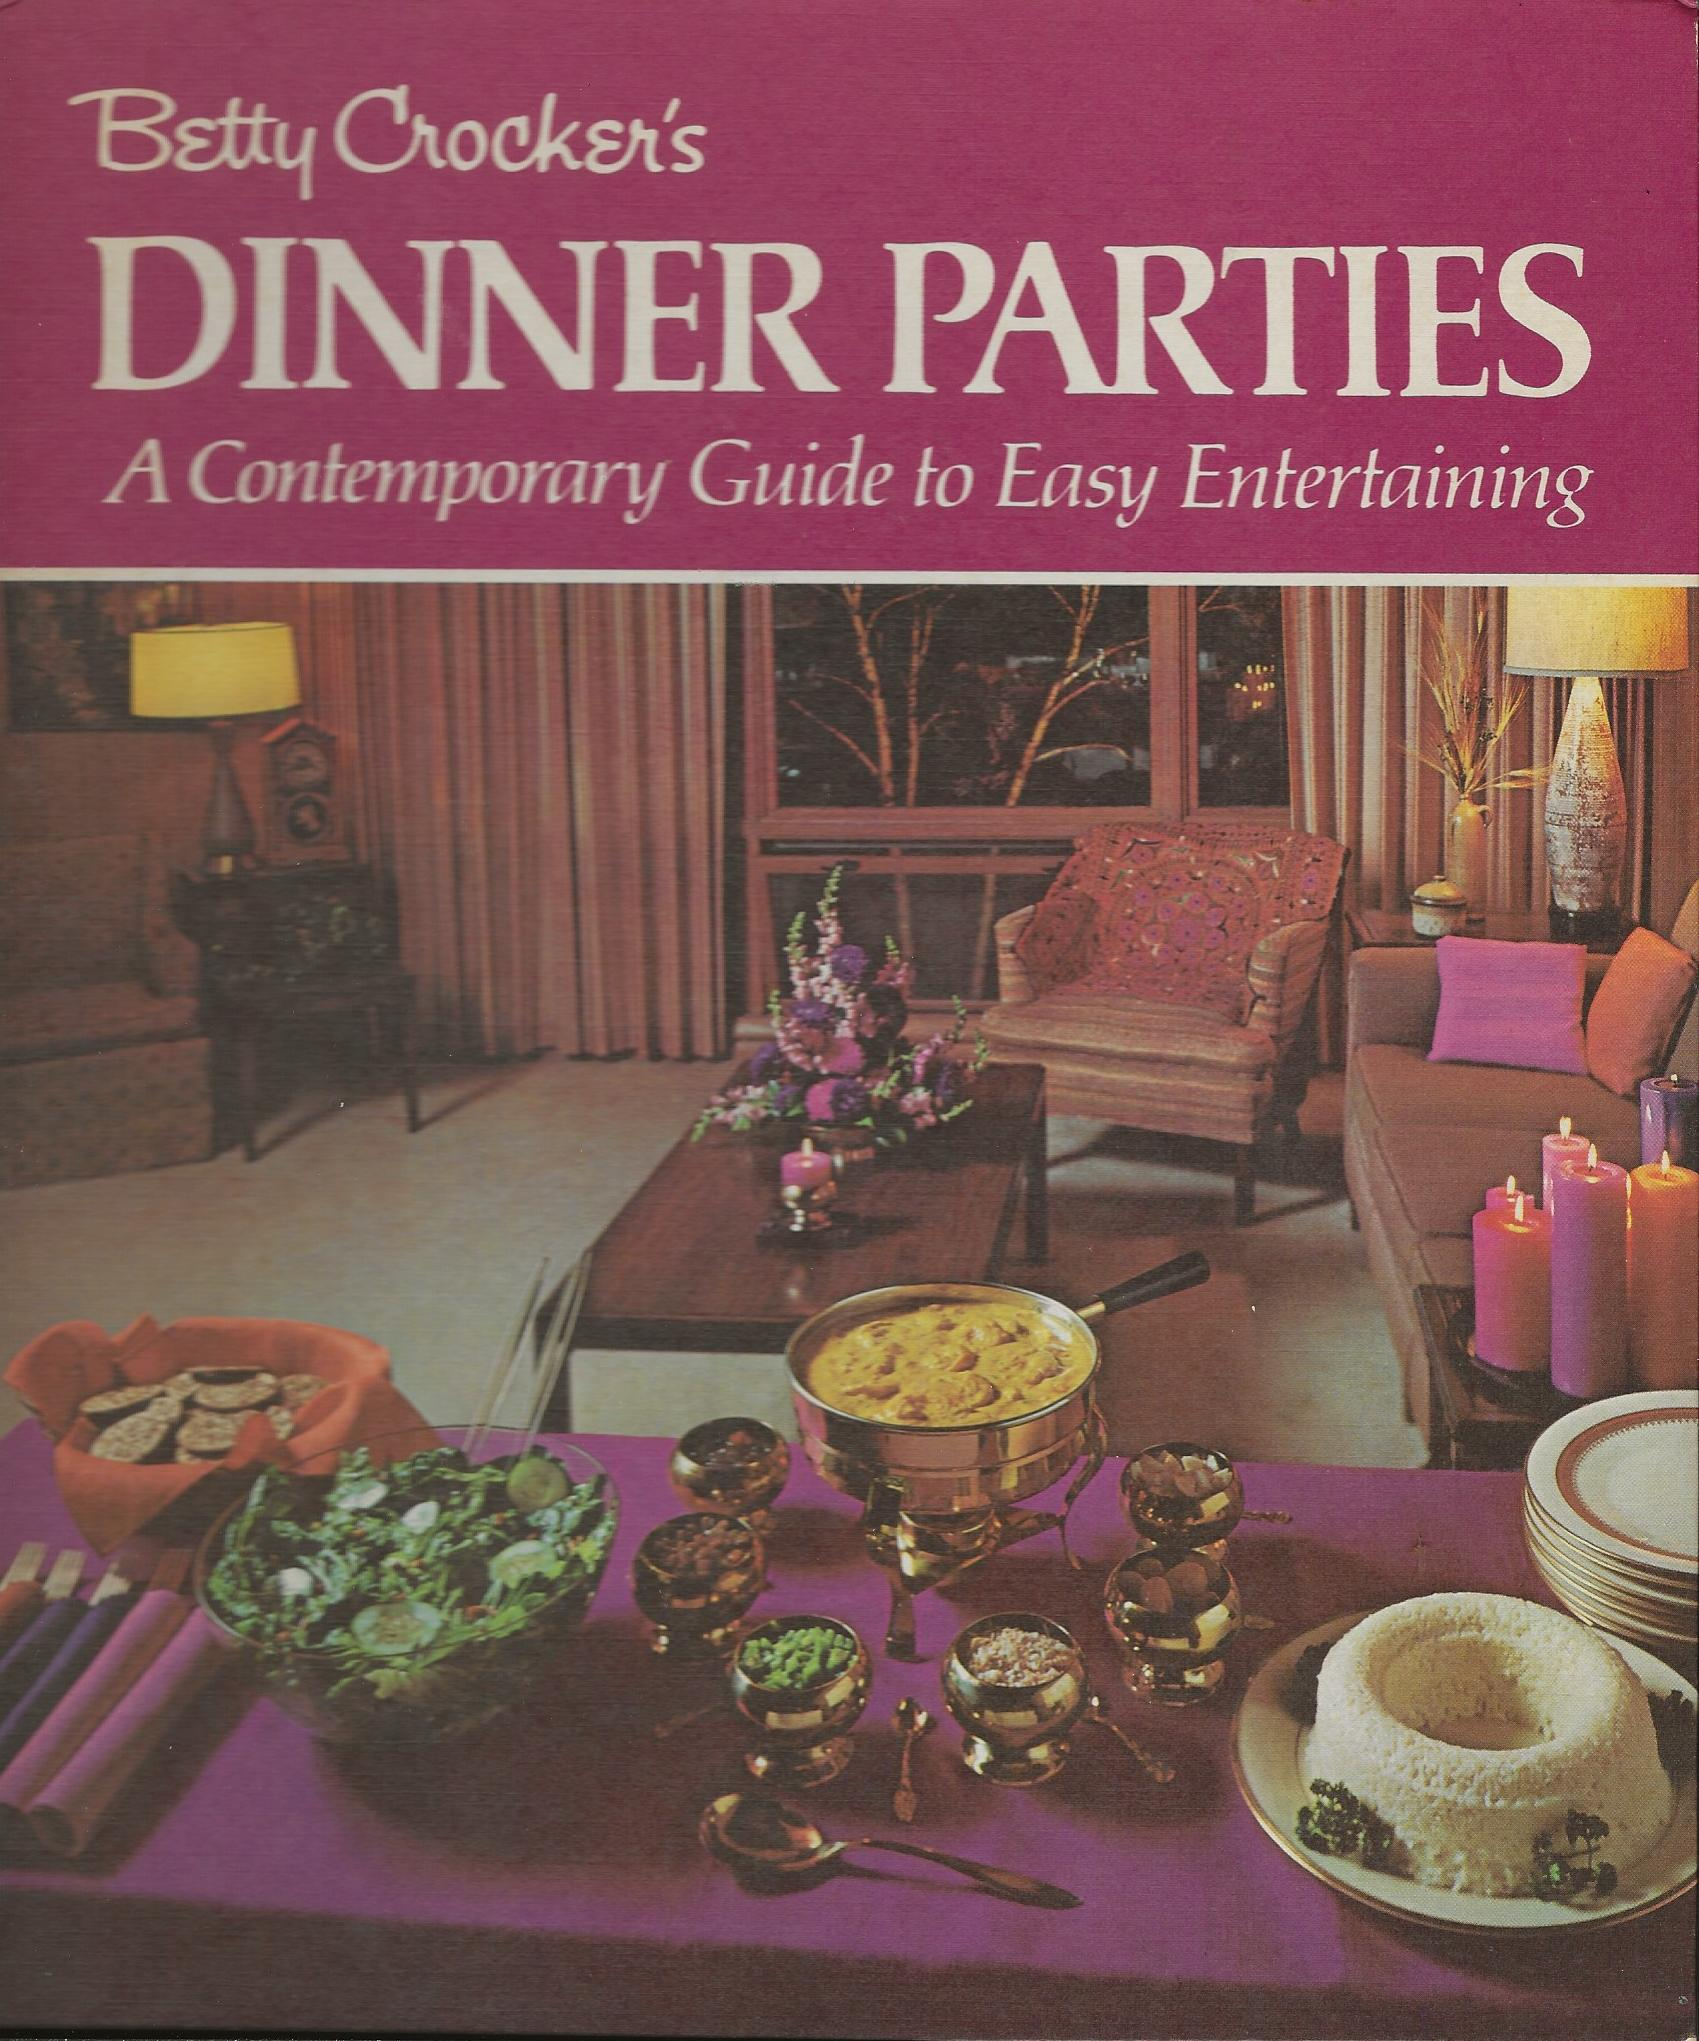 Image for BETTY CROCKER'S DINNER PARTIES